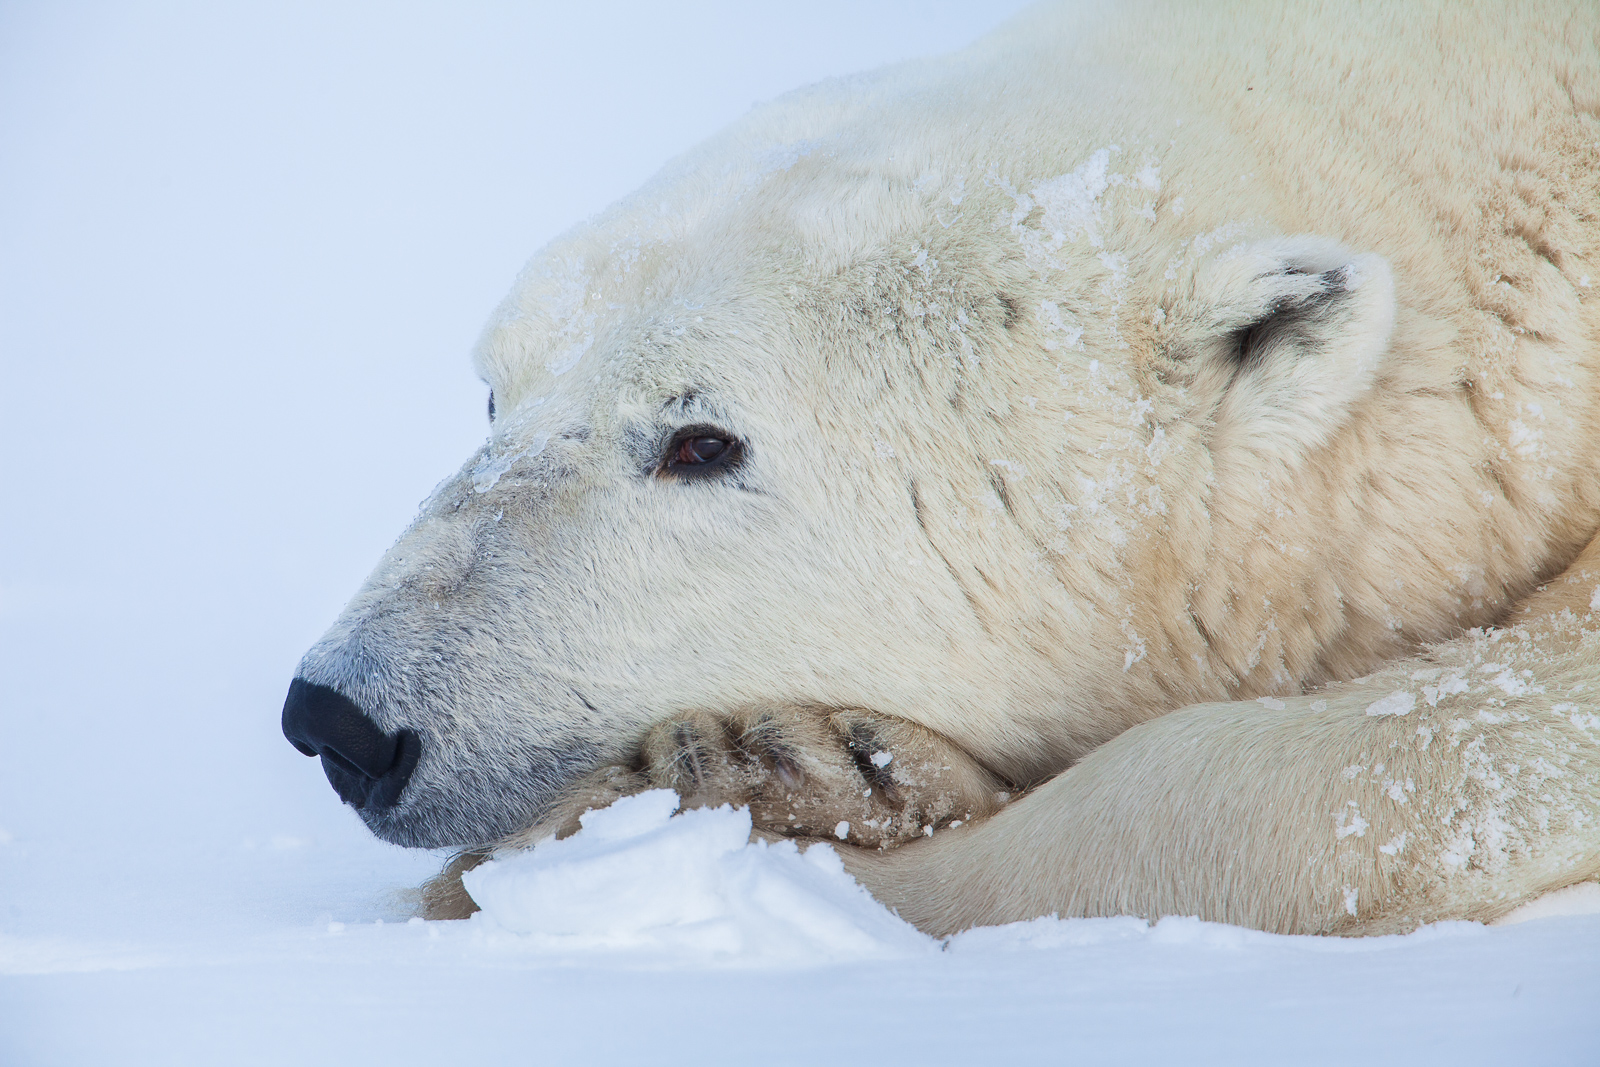 Mindful Rest,Close-up,Fall,Polar bear,Wildlife,Winter,Manitoba, Canada,Snow, photo